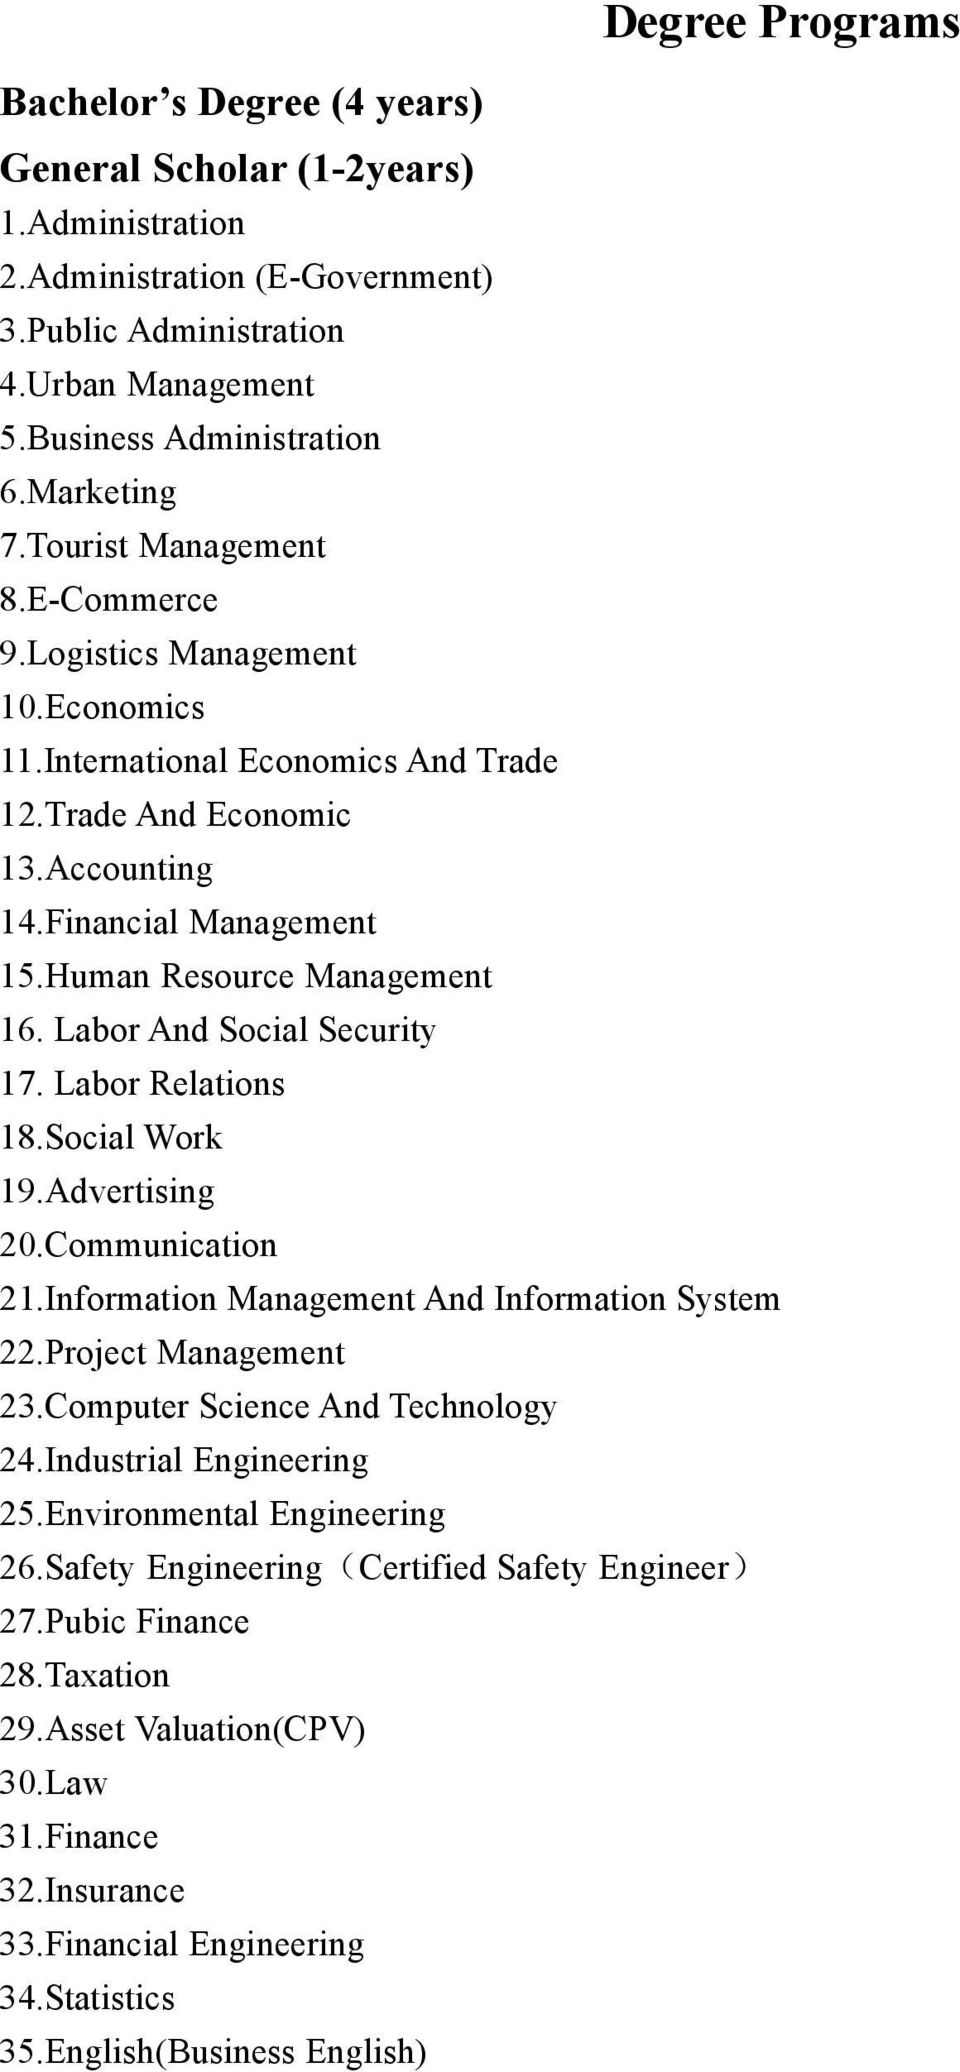 Human Resource Management 16. Labor And Social Security 17. Labor Relations 18.Social Work 19.Advertising 20.Communication 21.Information Management And Information System 22.Project Management 23.